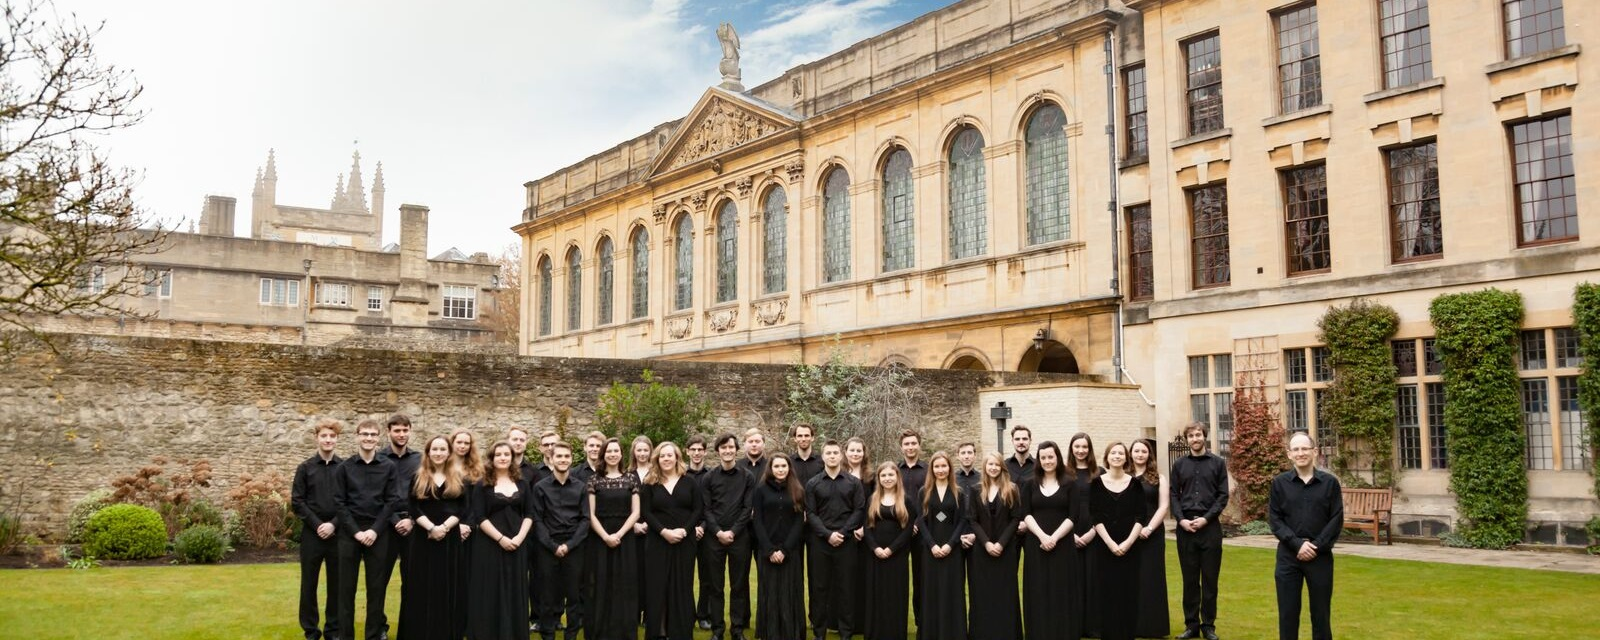 The Queen's College Choir